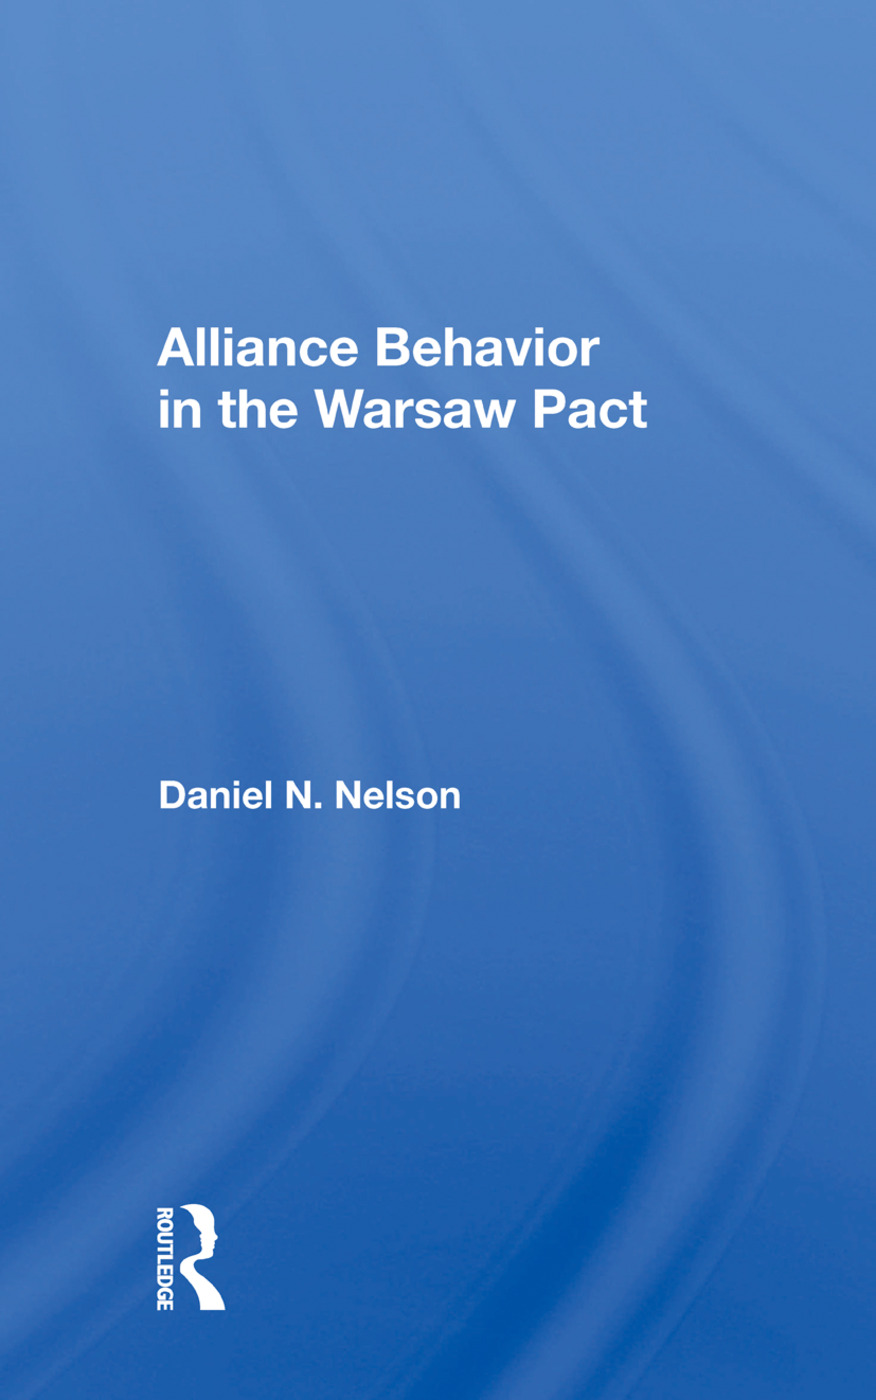 Alliance Behavior in the Warsaw Pact